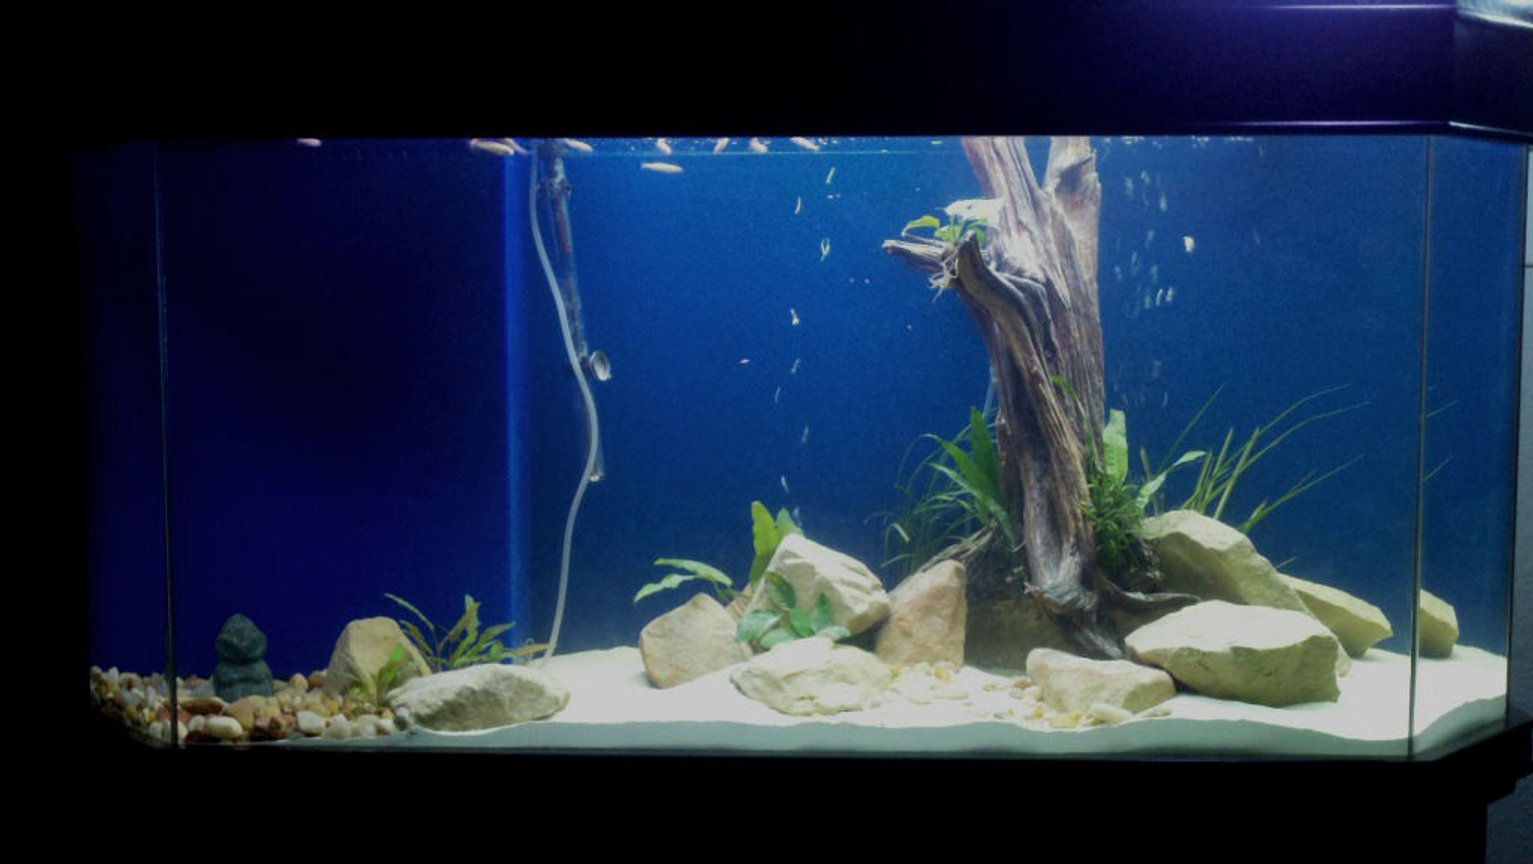 75 gallons planted tank (mostly live plants and fish) - Anubius, Java Fern, Spirilius, River Rocks, Ledge Rock, Cedar Driftwood, Cichlid Sand, Awaiting Calvus and Syno Cats